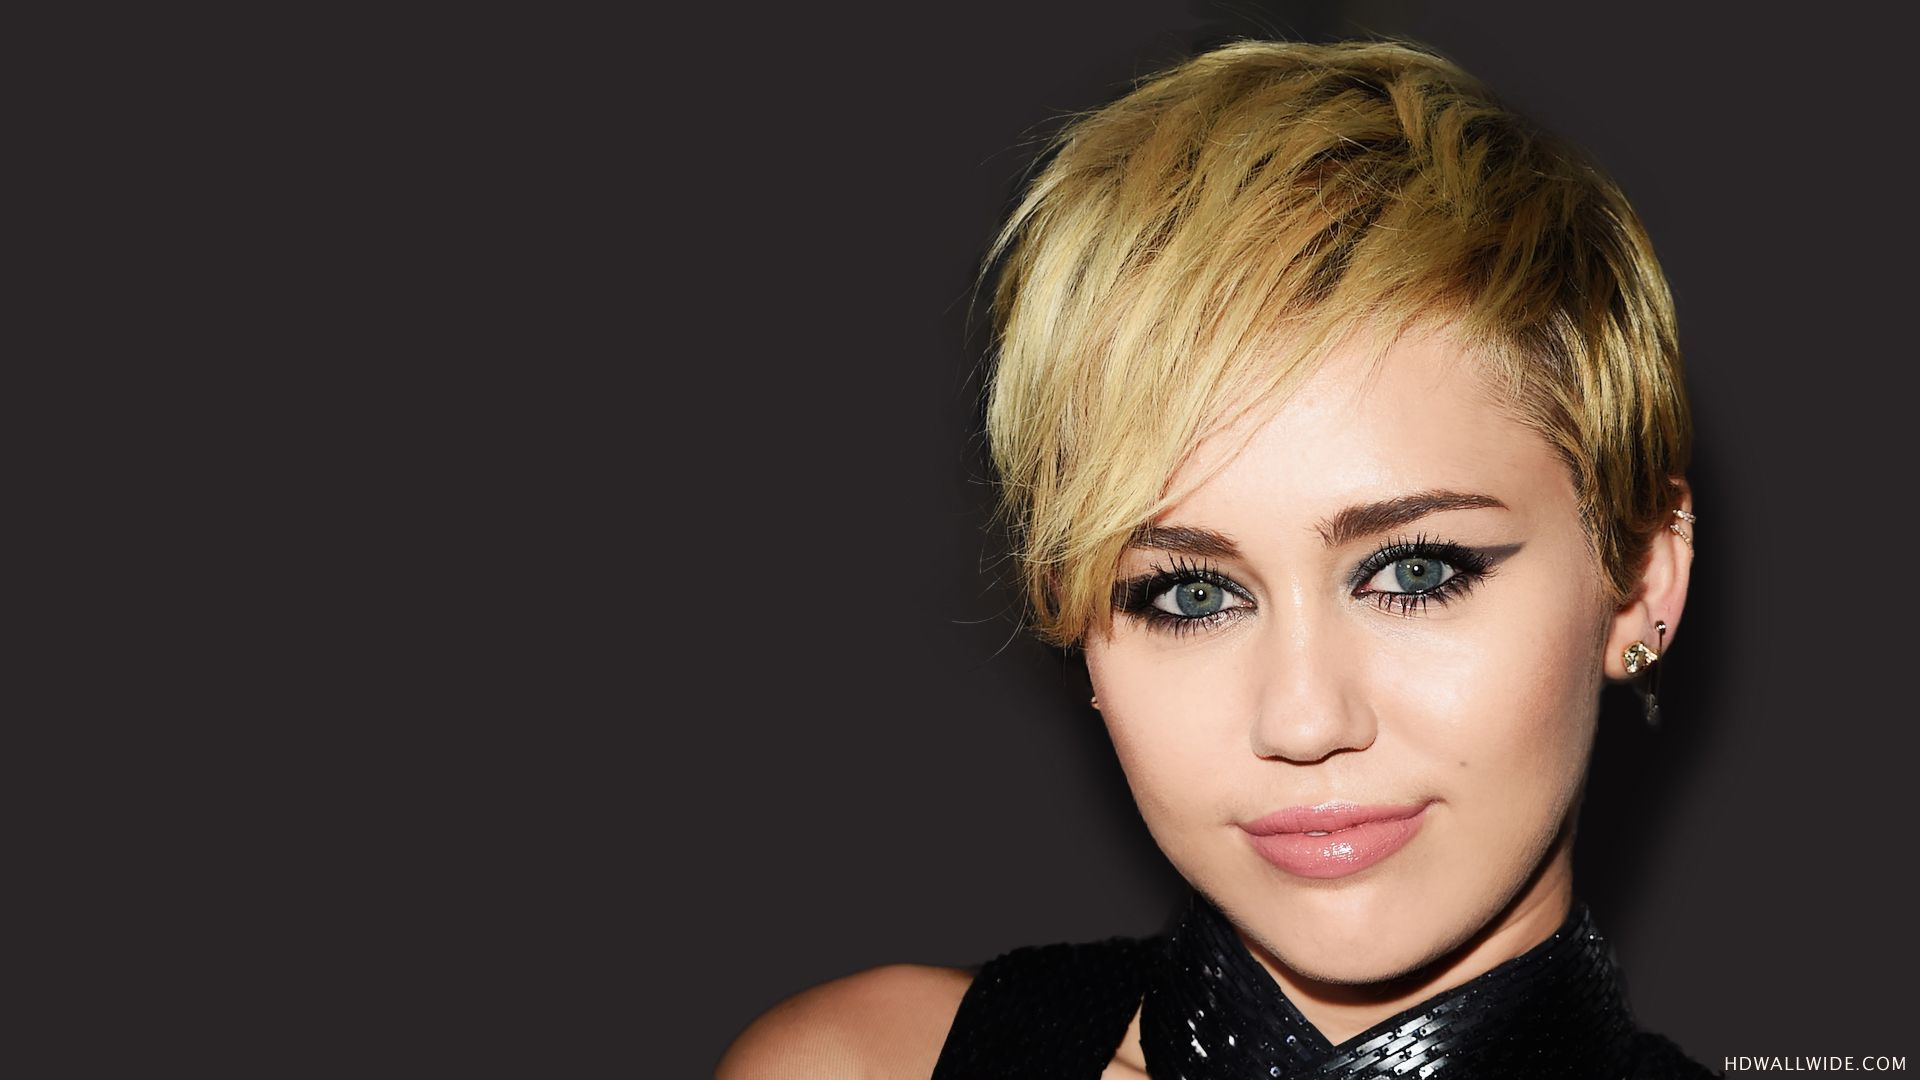 miley cyrus | wallpaper: miley cyrus hd pictures hd wallpaper